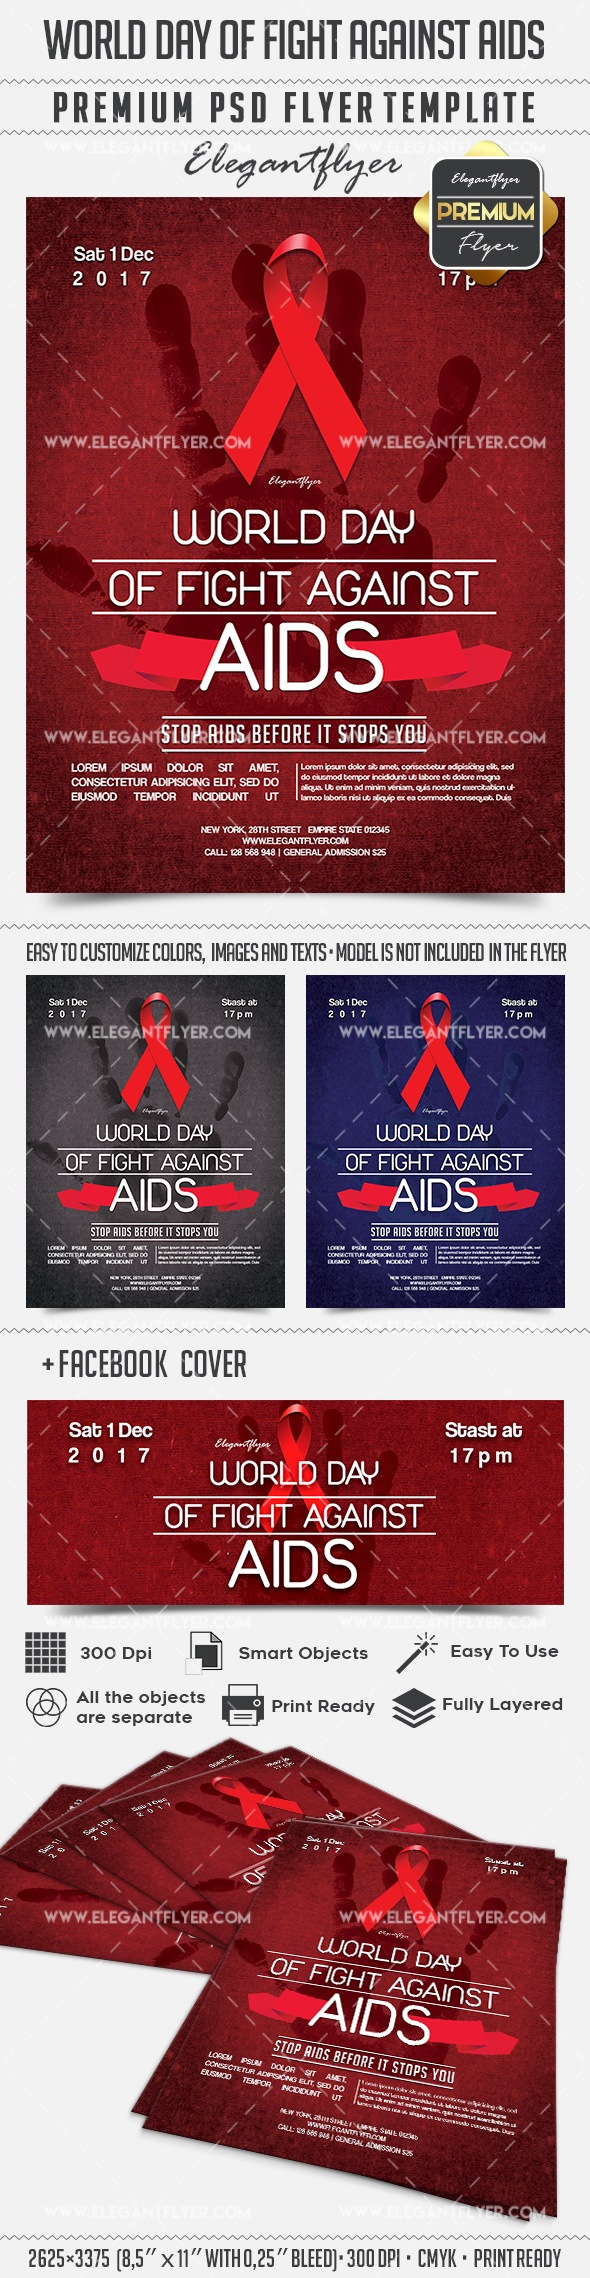 World day of fight against AIDS – Flyer PSD Template + Facebook Cover